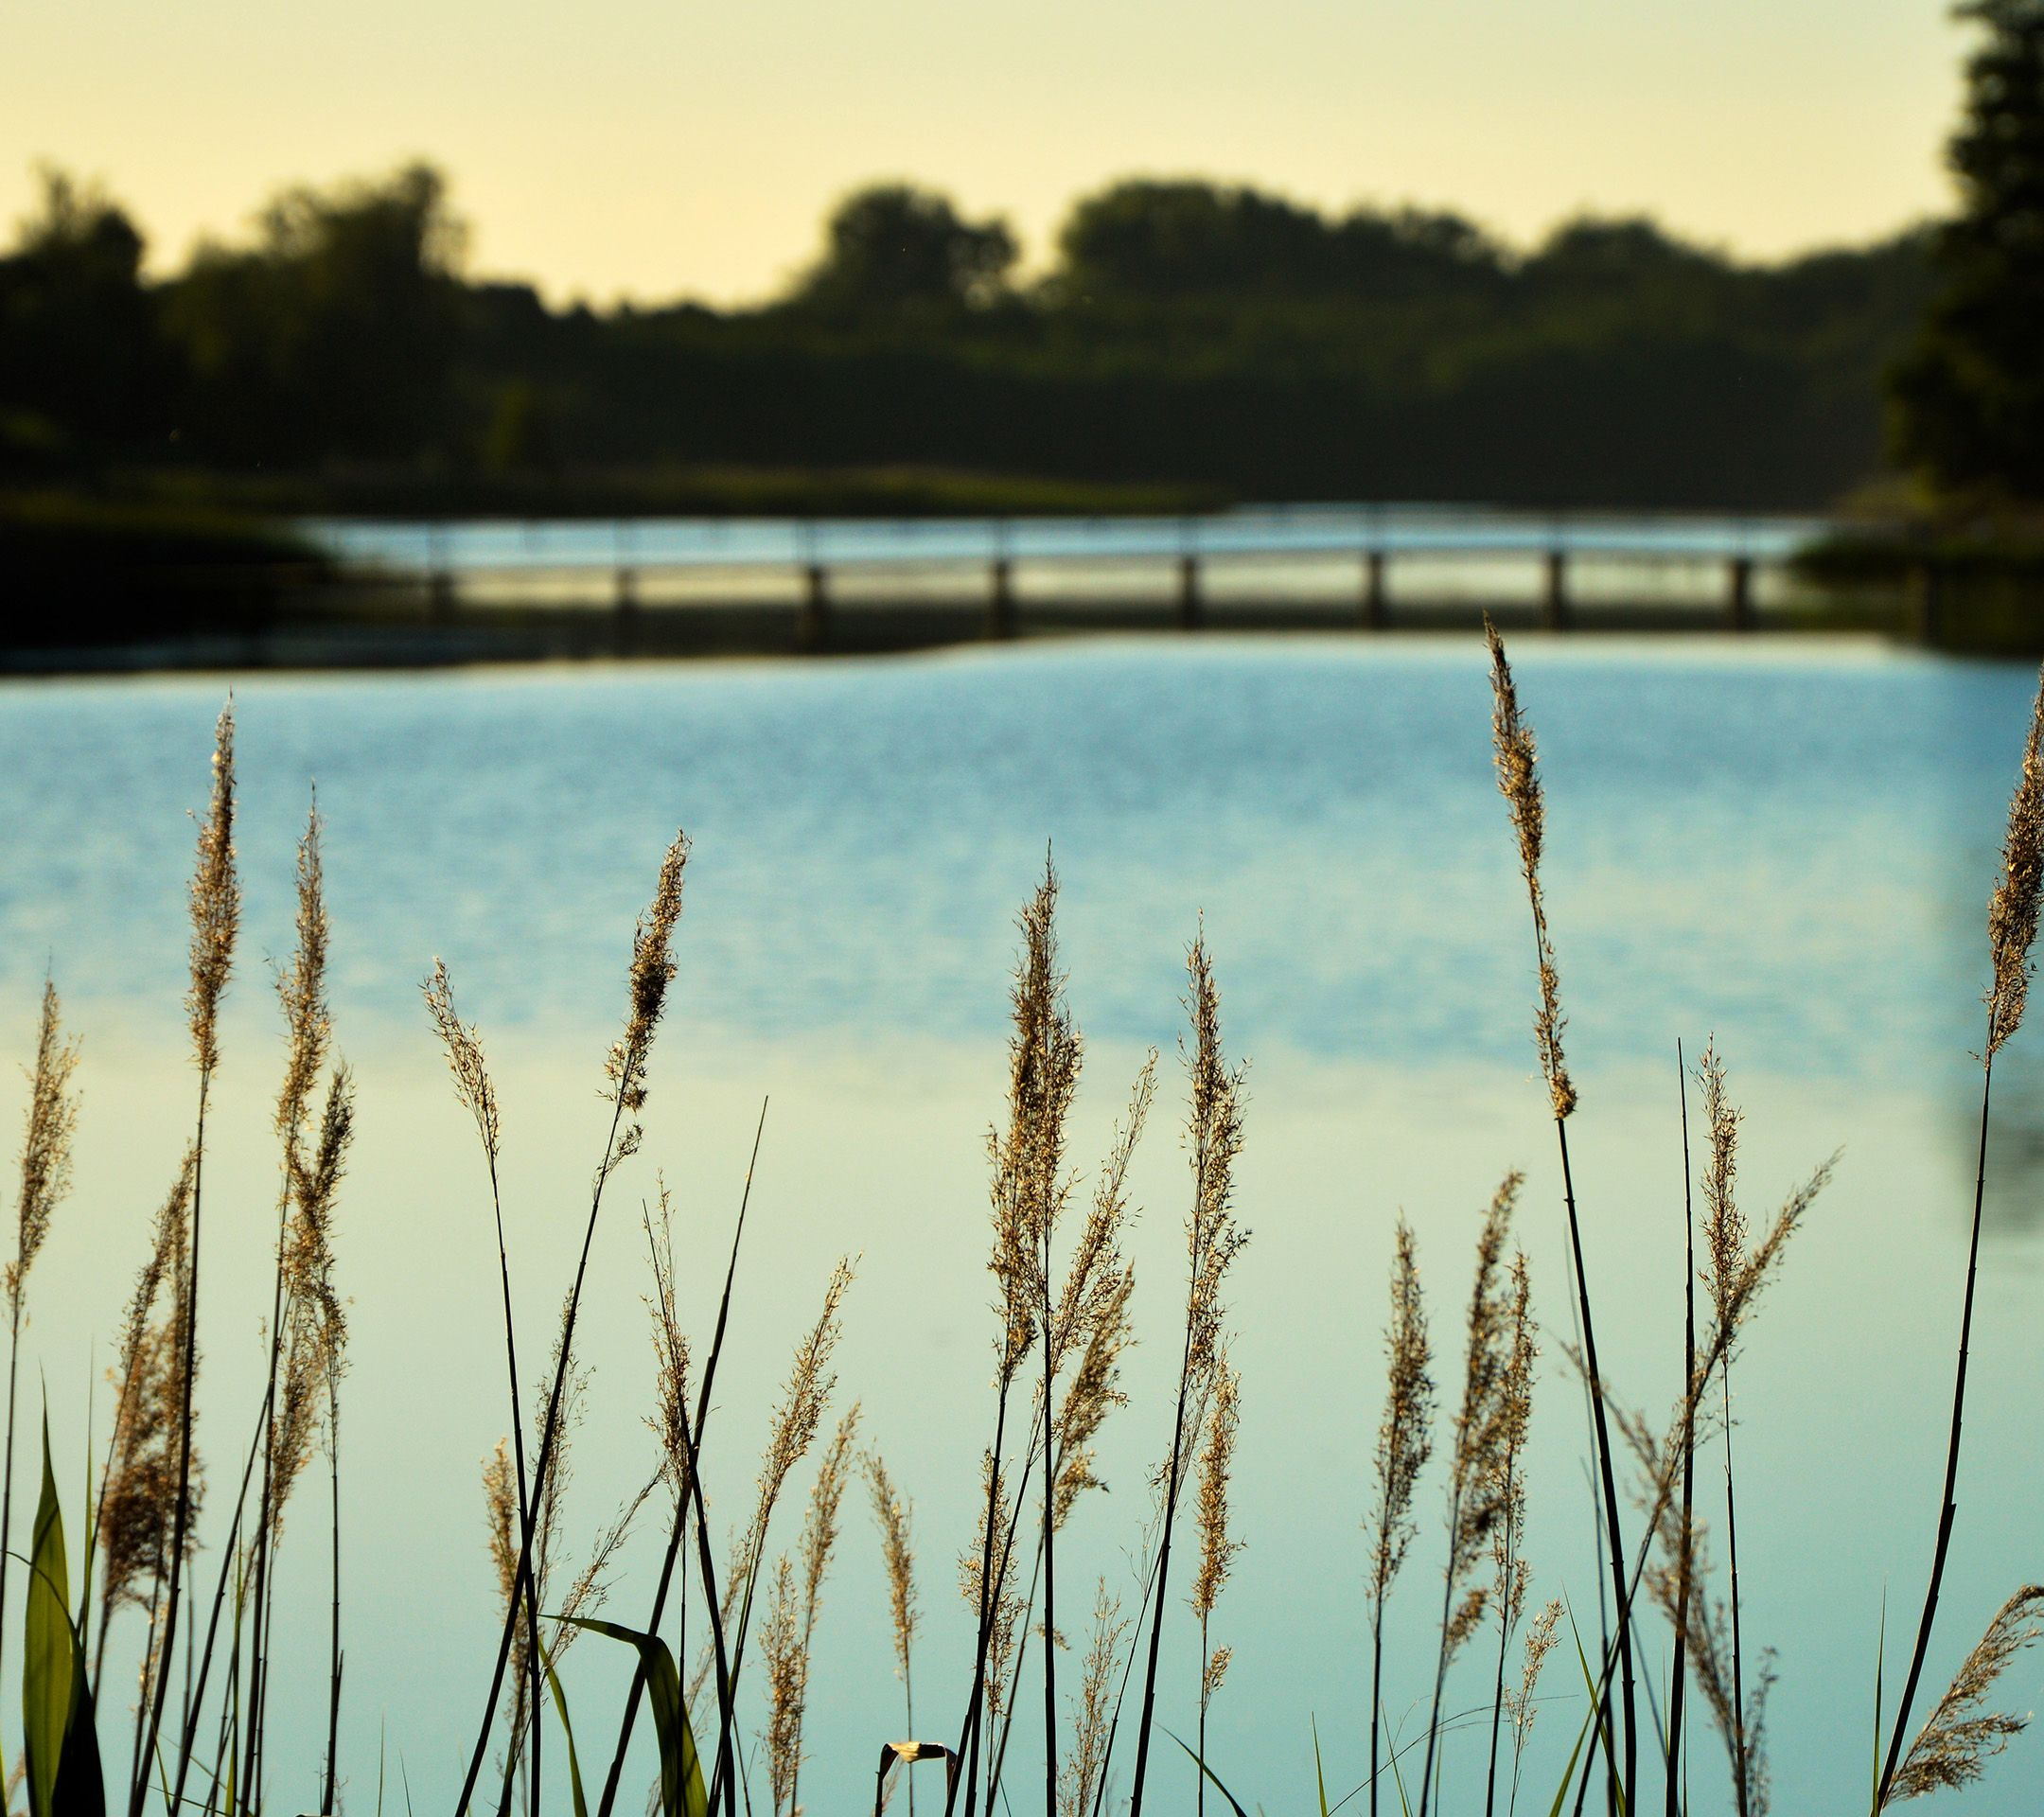 http://bit.ly/1WoqTgQ - AndroidPapers.co wallpapers - mw73-lake-view-flower-water-calm-nature-bokeh - Android, wallpaper